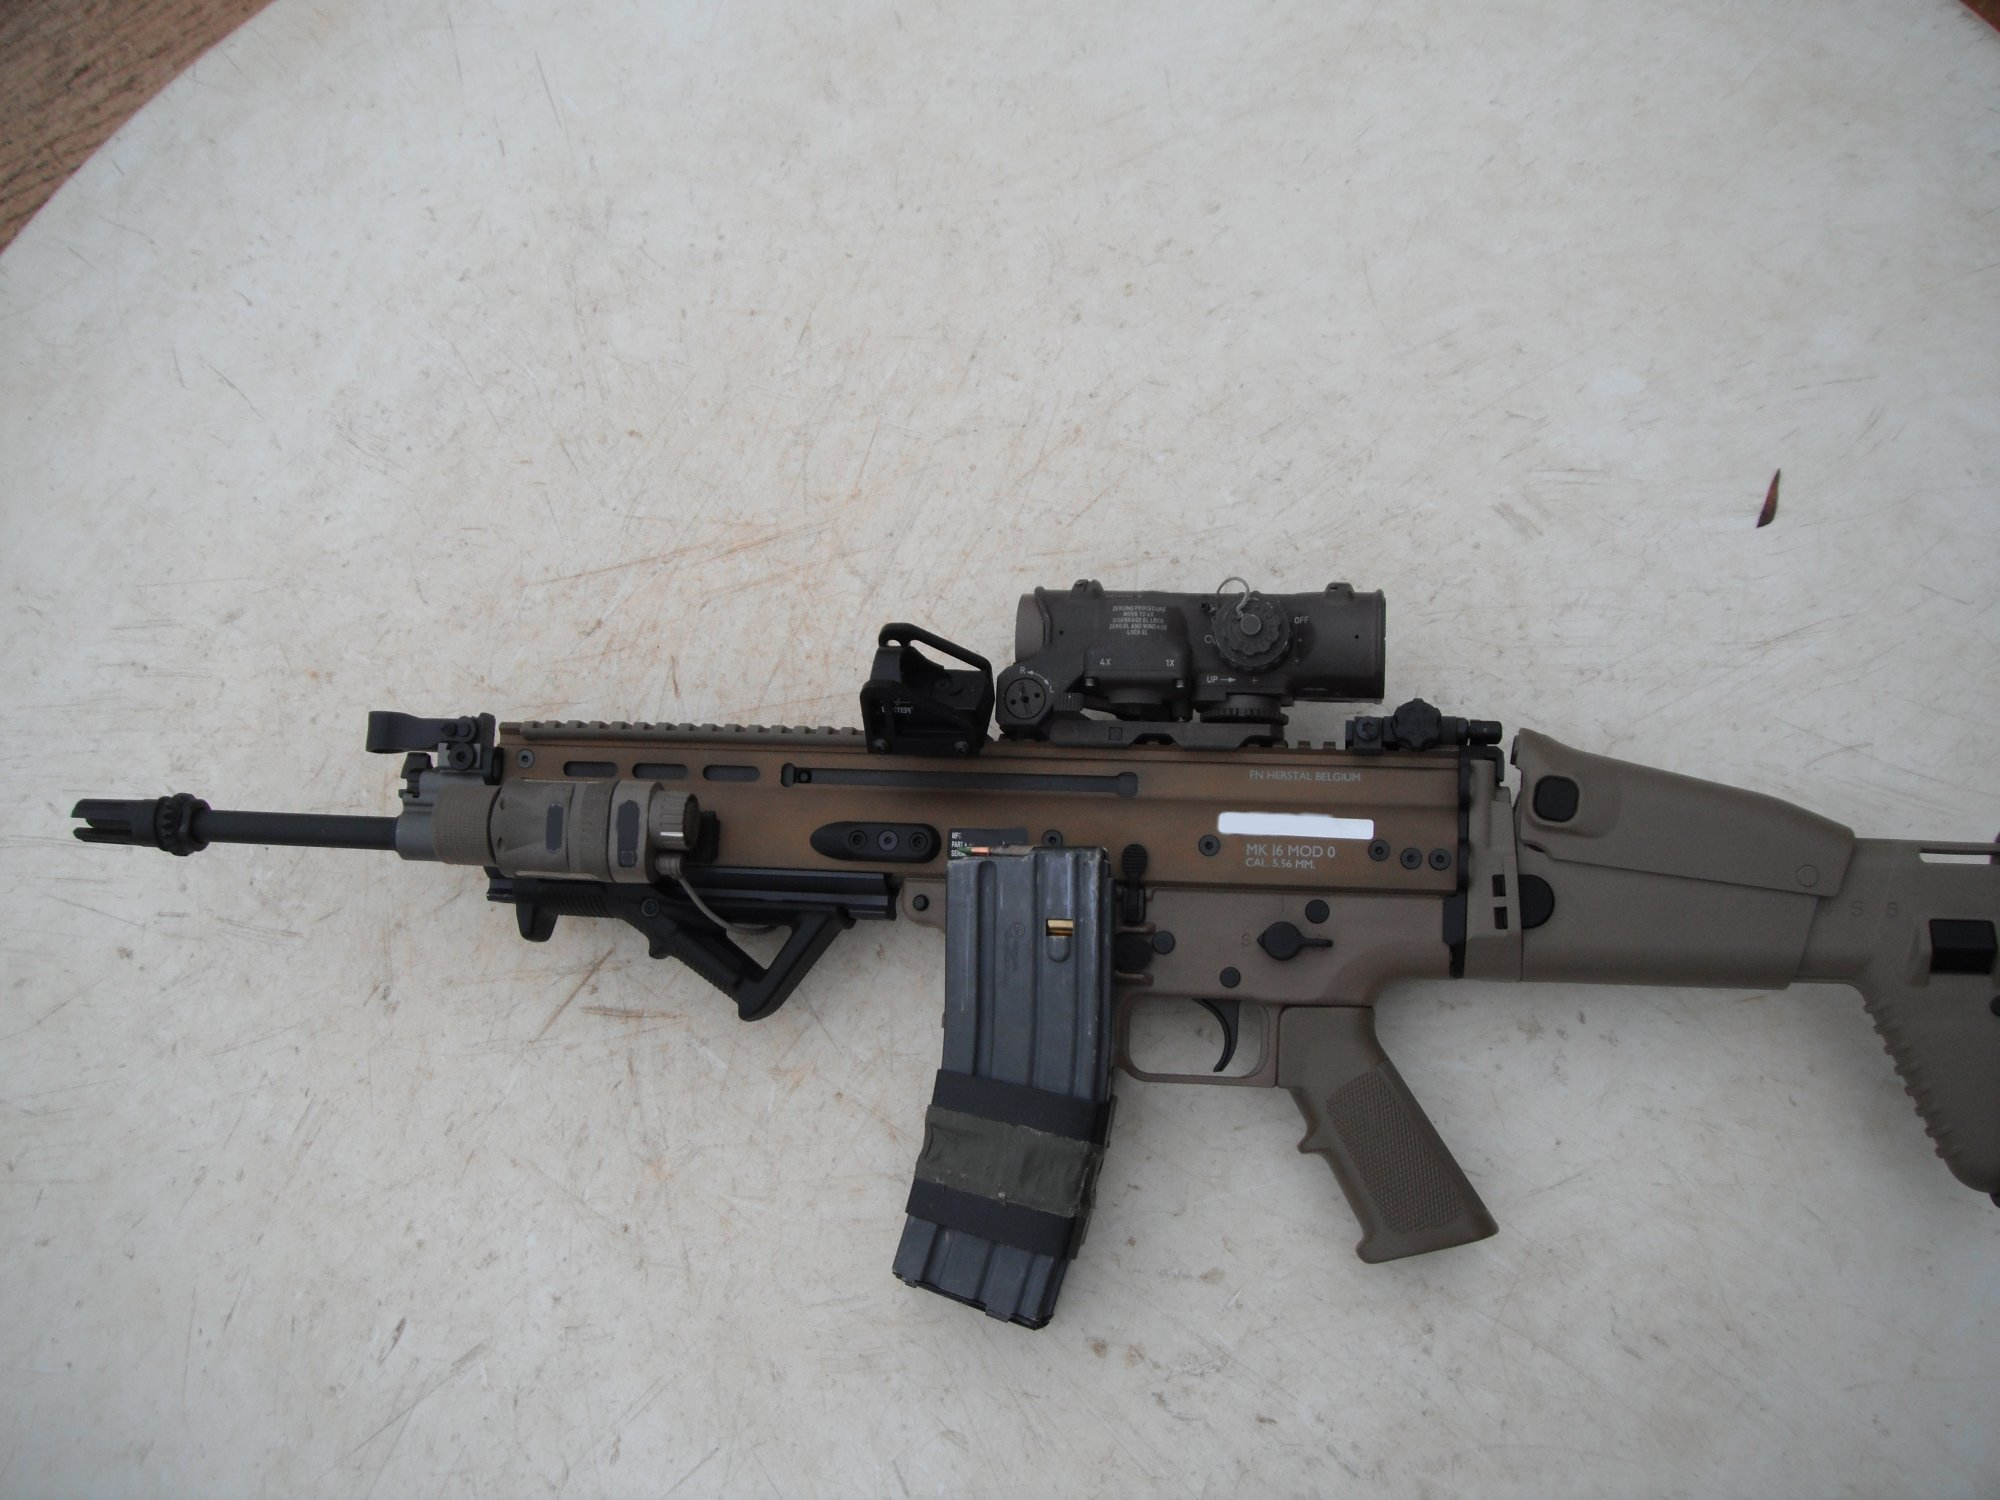 Fn scar weapons program status update and special operations forces